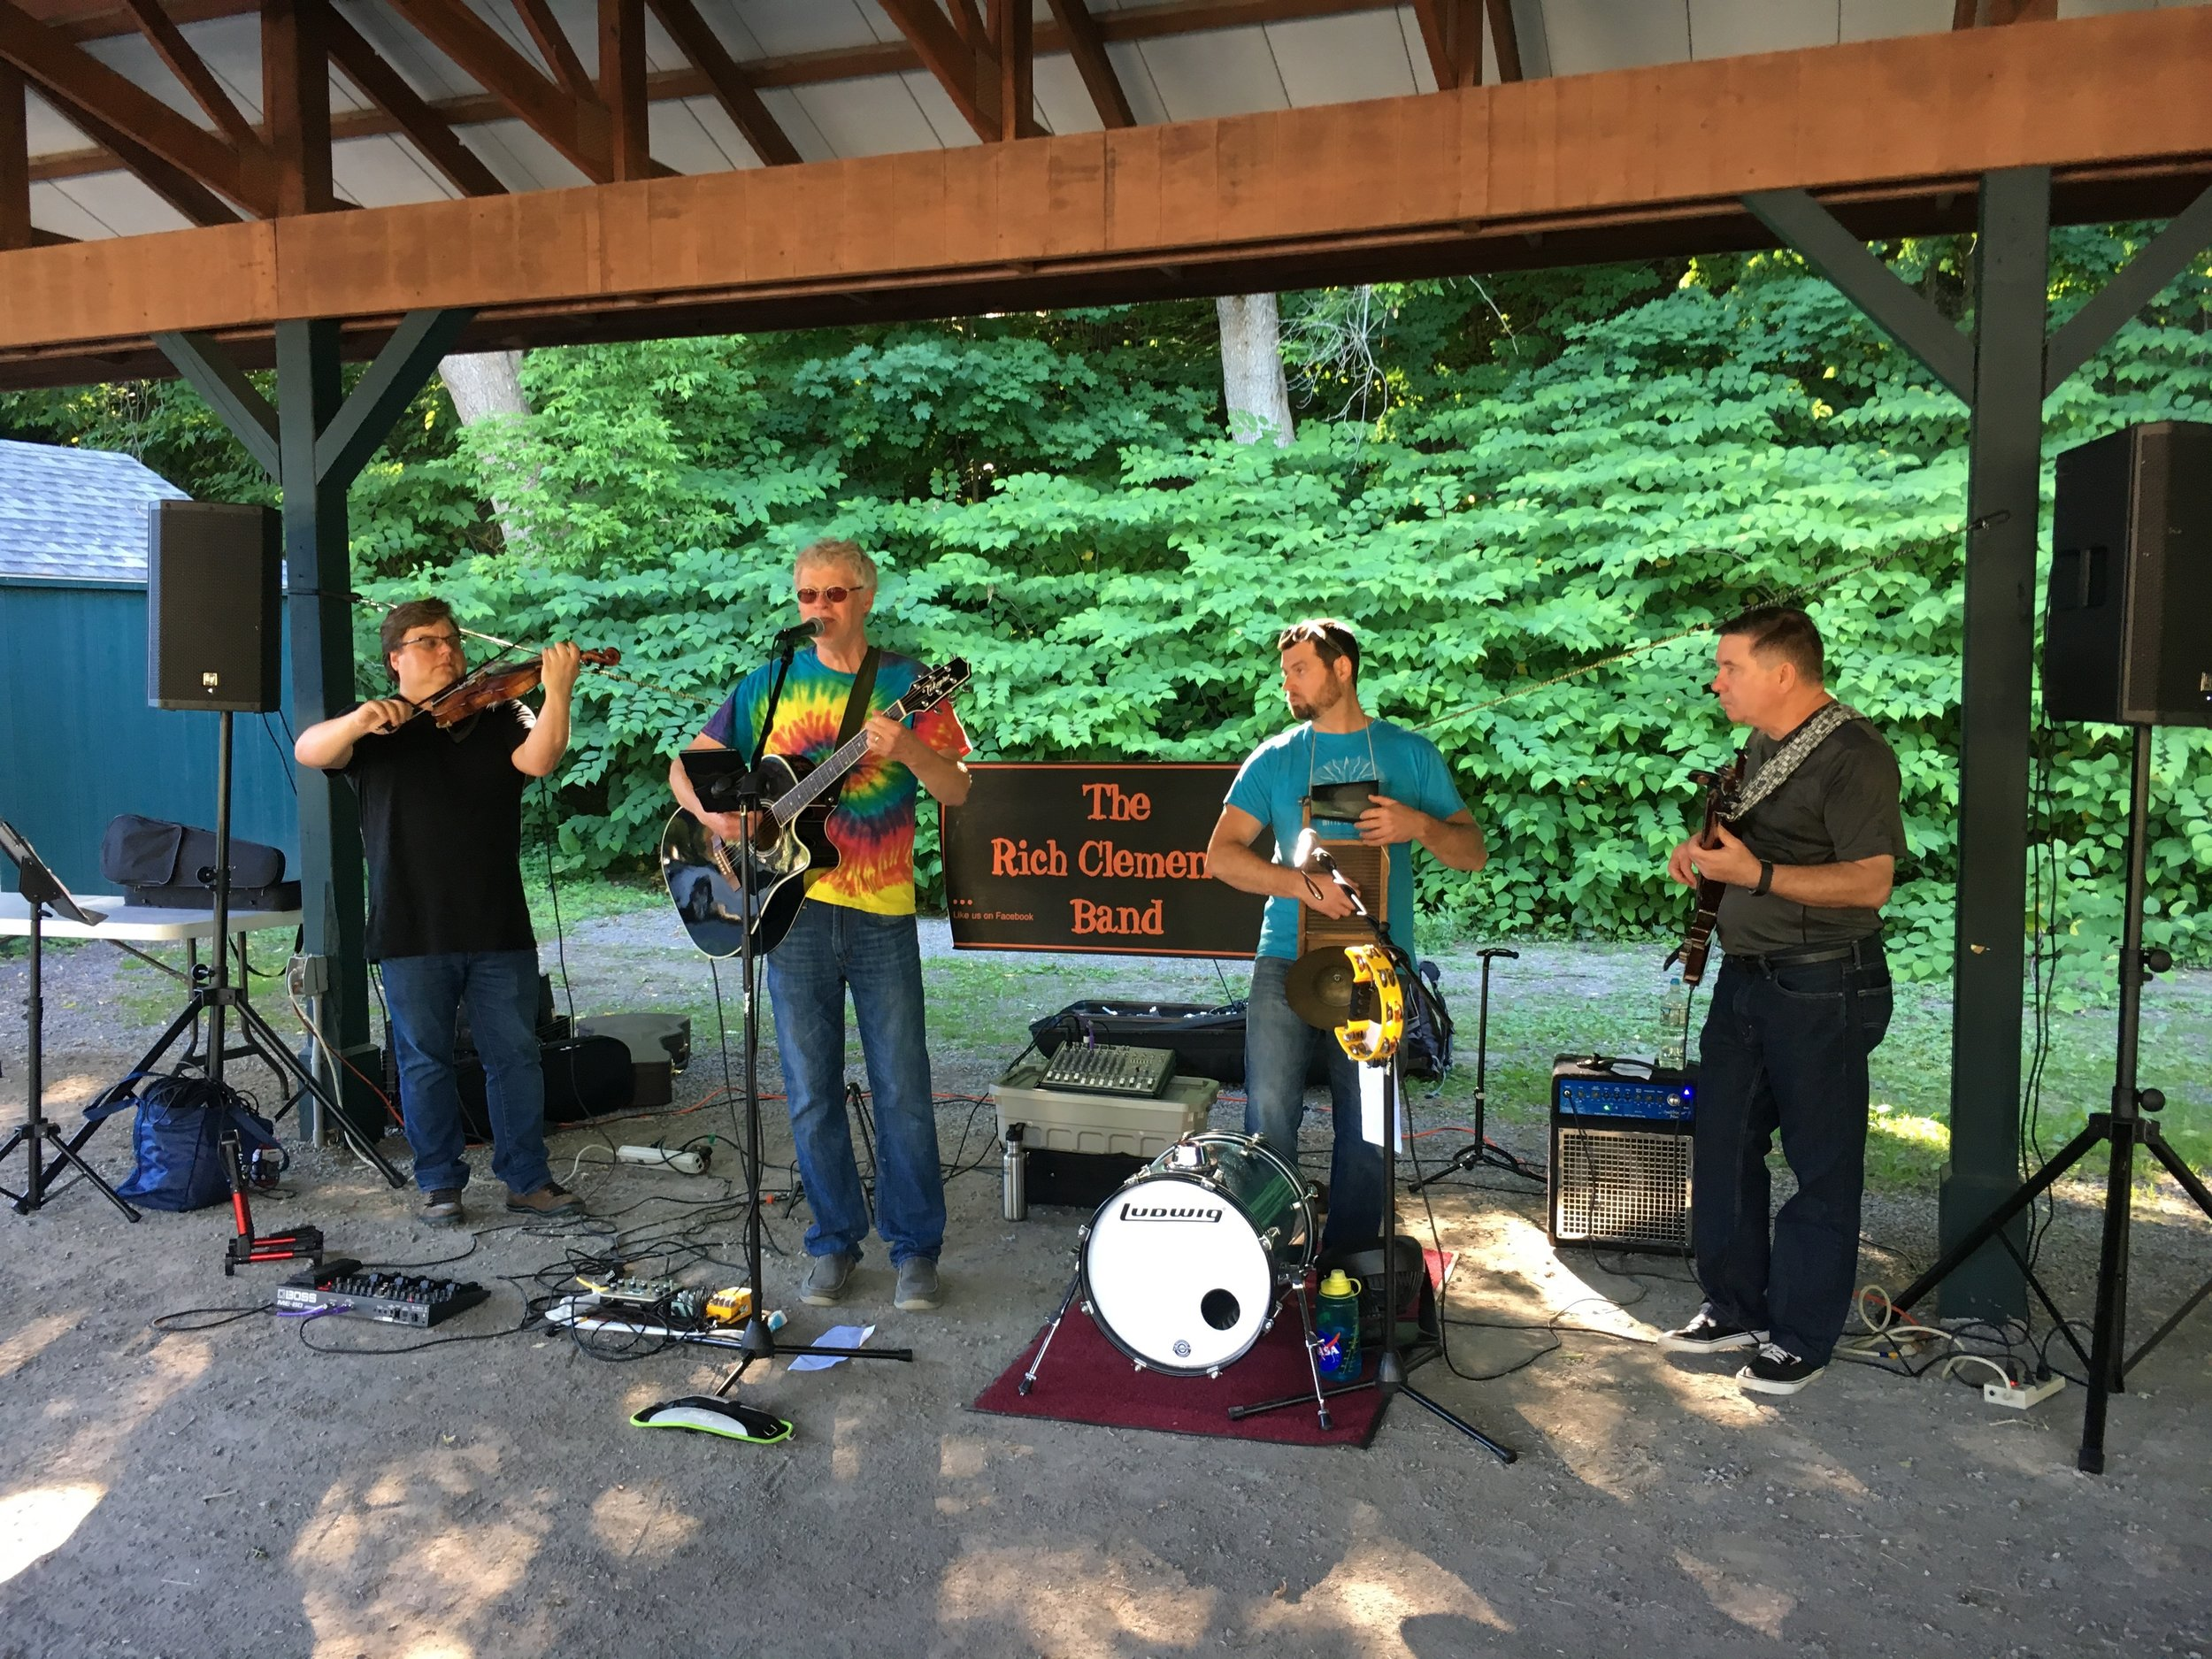 - Live music was provided throughout the event by The Rich Clements Band.